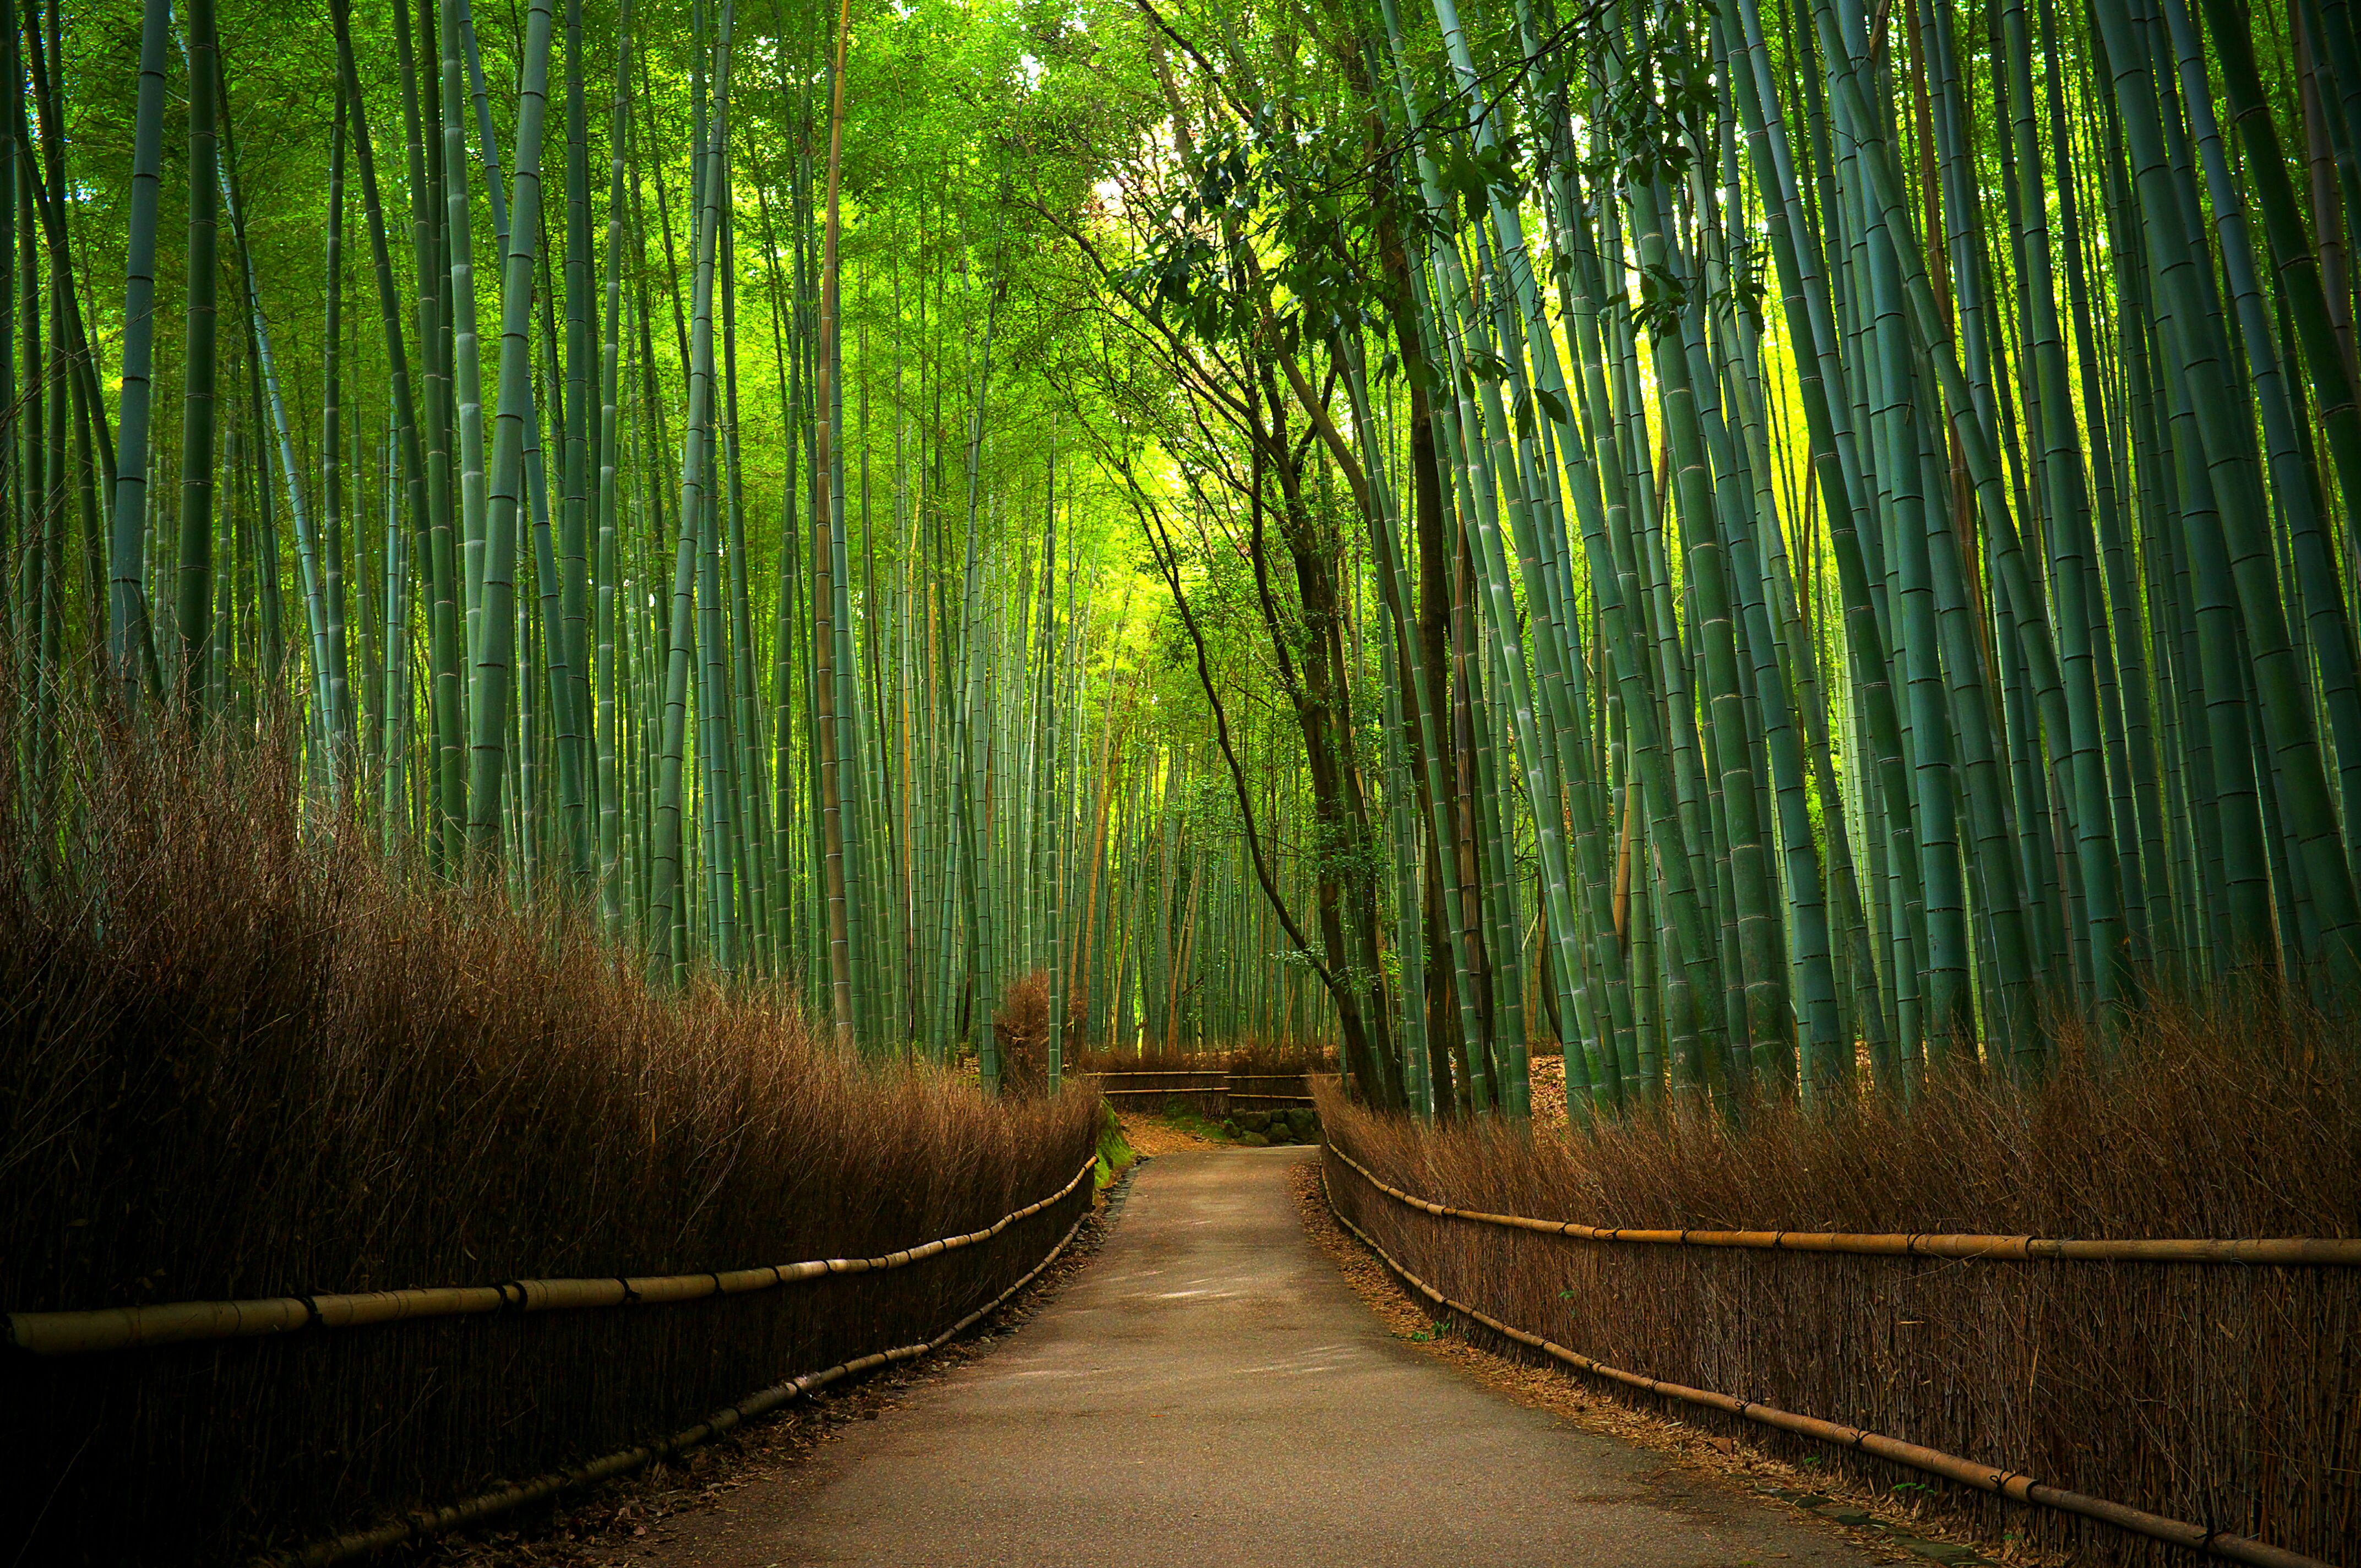 4288x2848px bamboo forest wallpaper for home - wallpapersafari